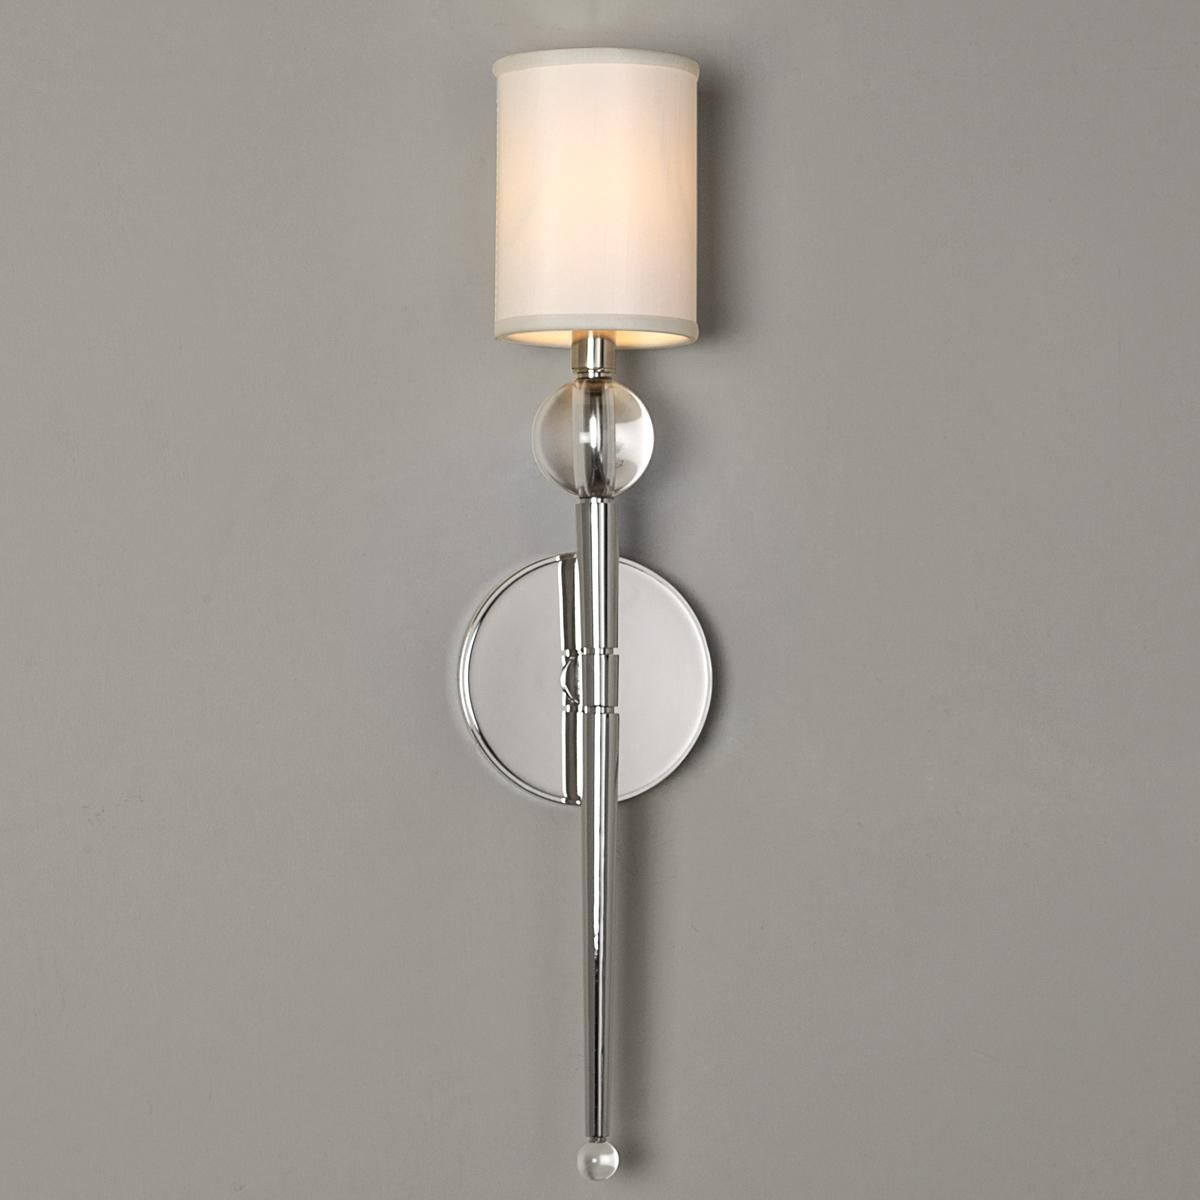 Crystal Ball Elongated Torch Wall Sconce Shades Of Light